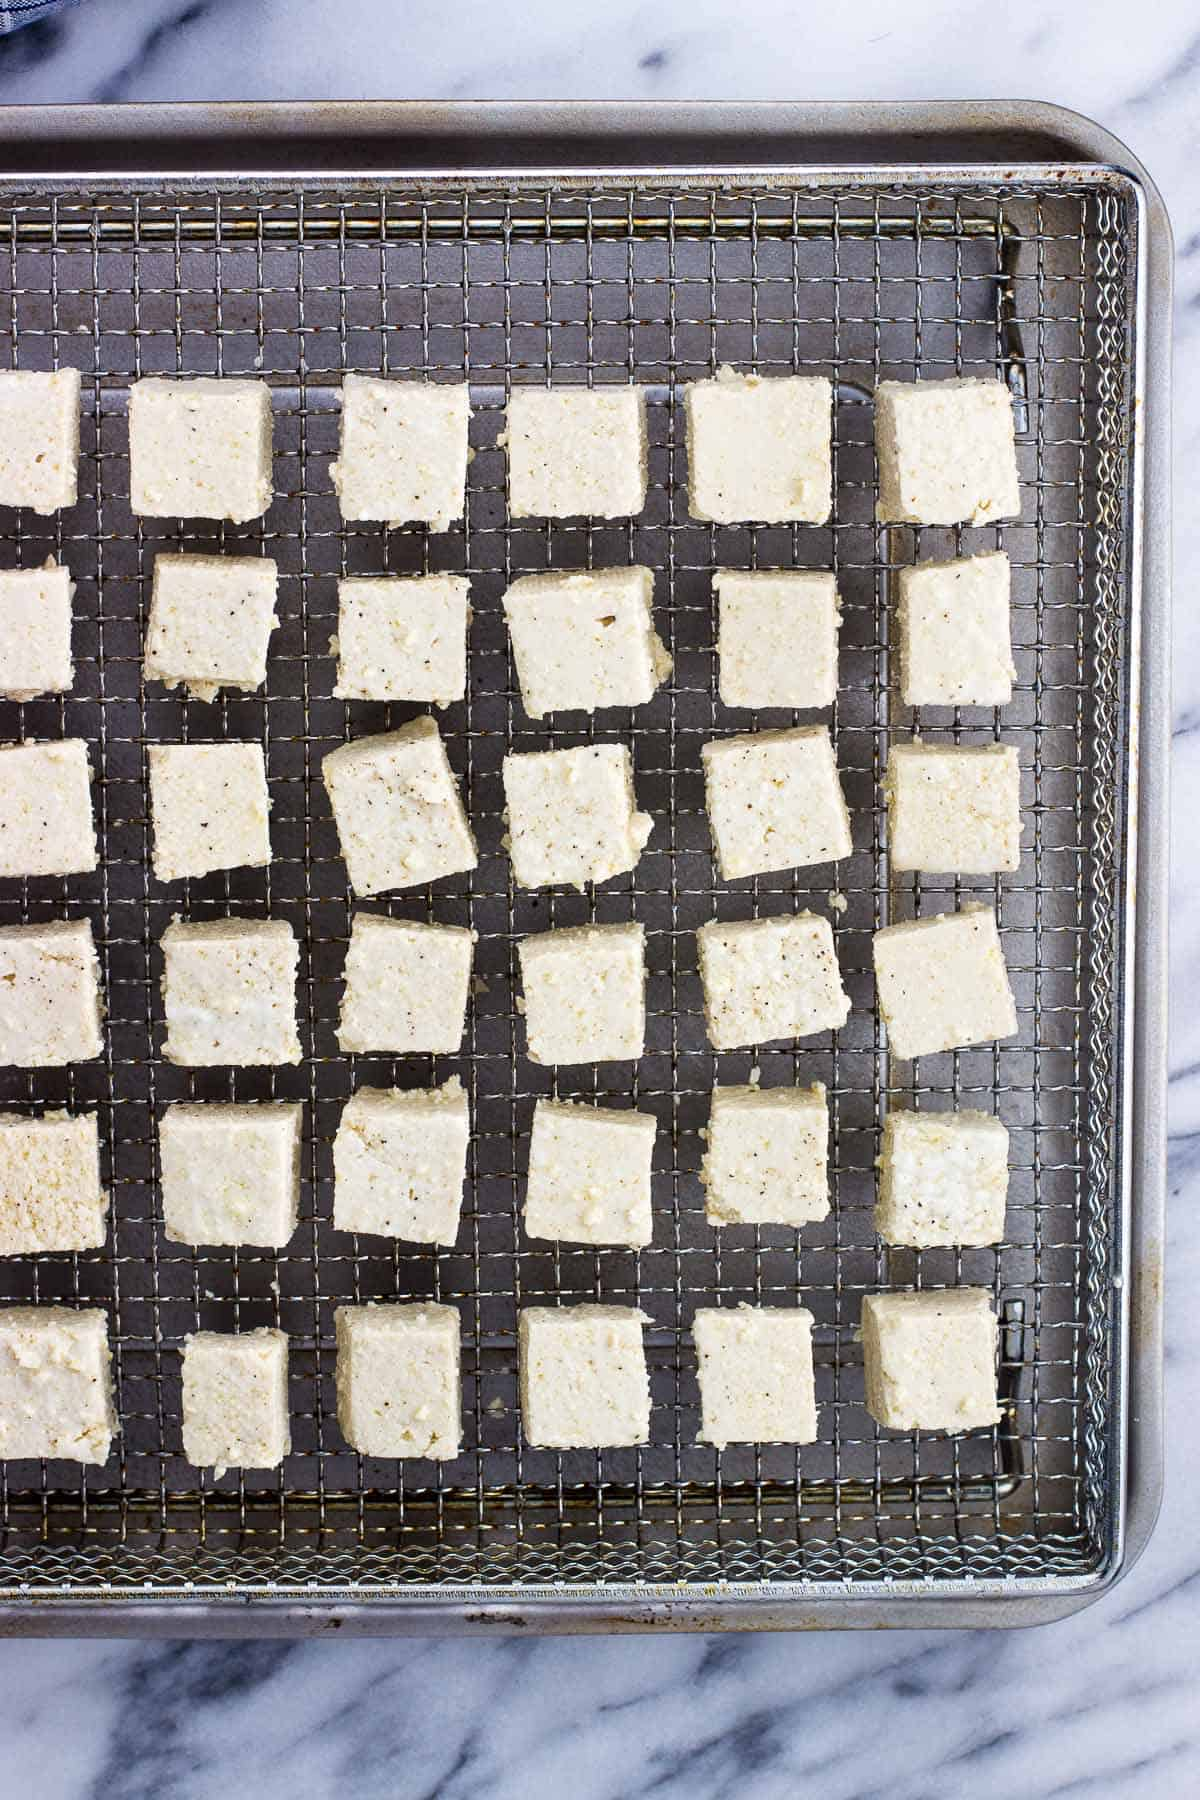 An overhead picture of tofu cubes lined up in a single layer on a metal air fryer basket